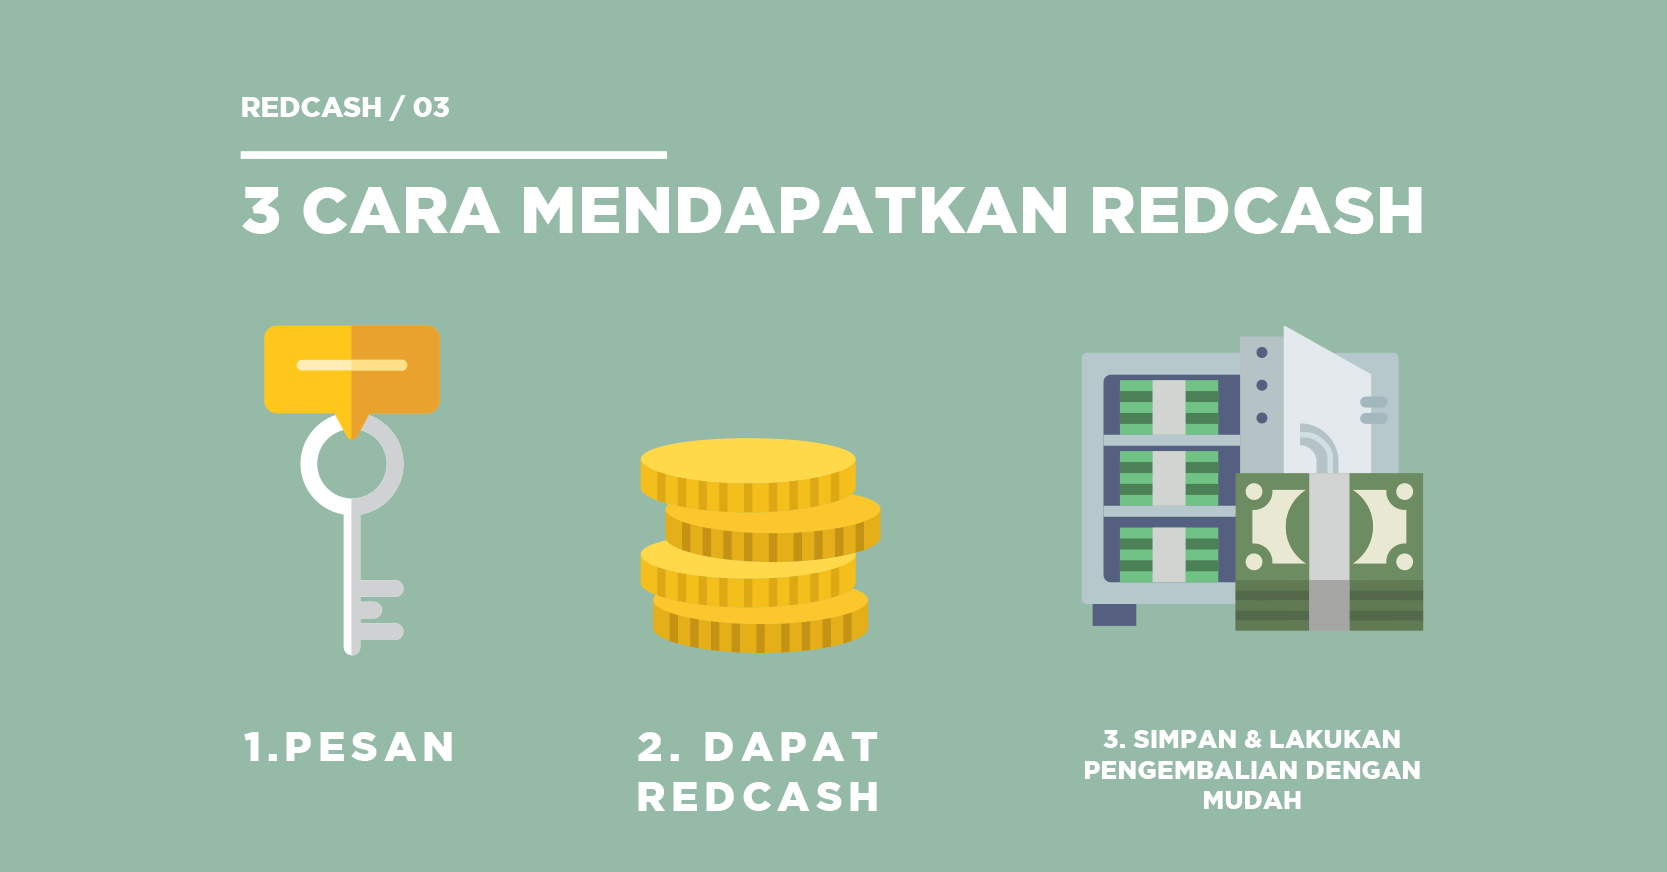 redcash 3